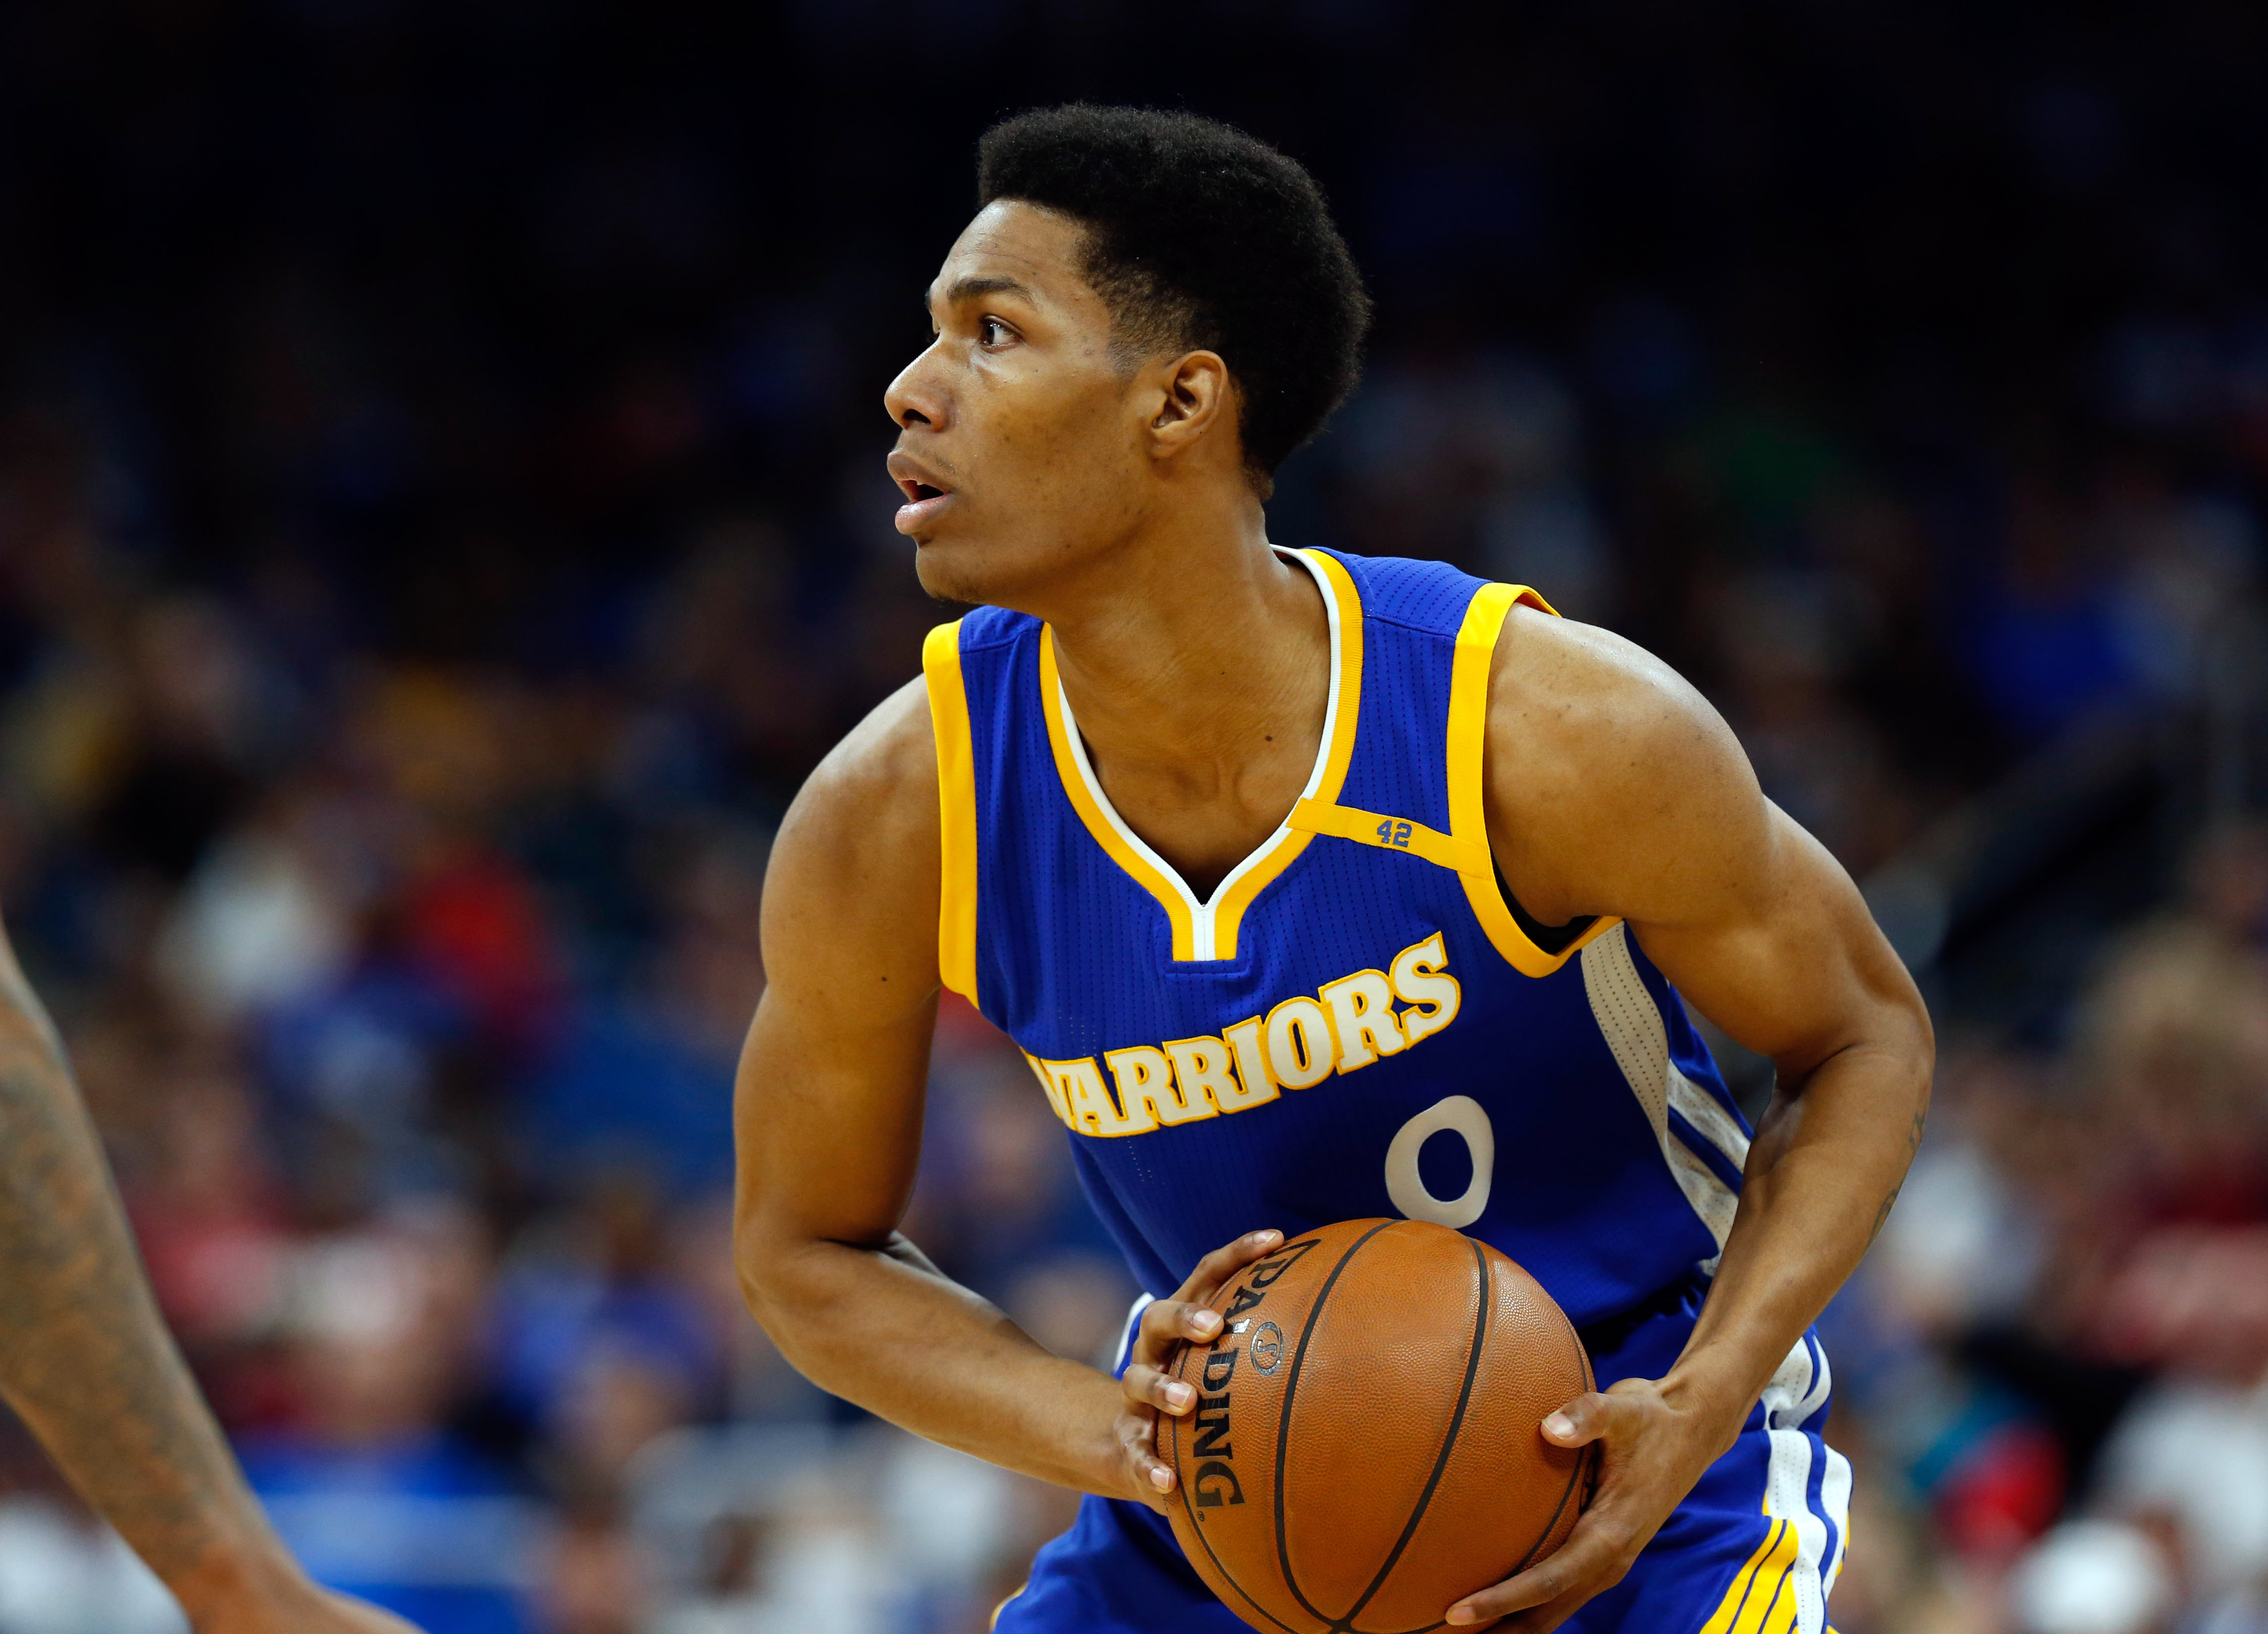 Golden State Warriors: Patrick McCaw's ups and down